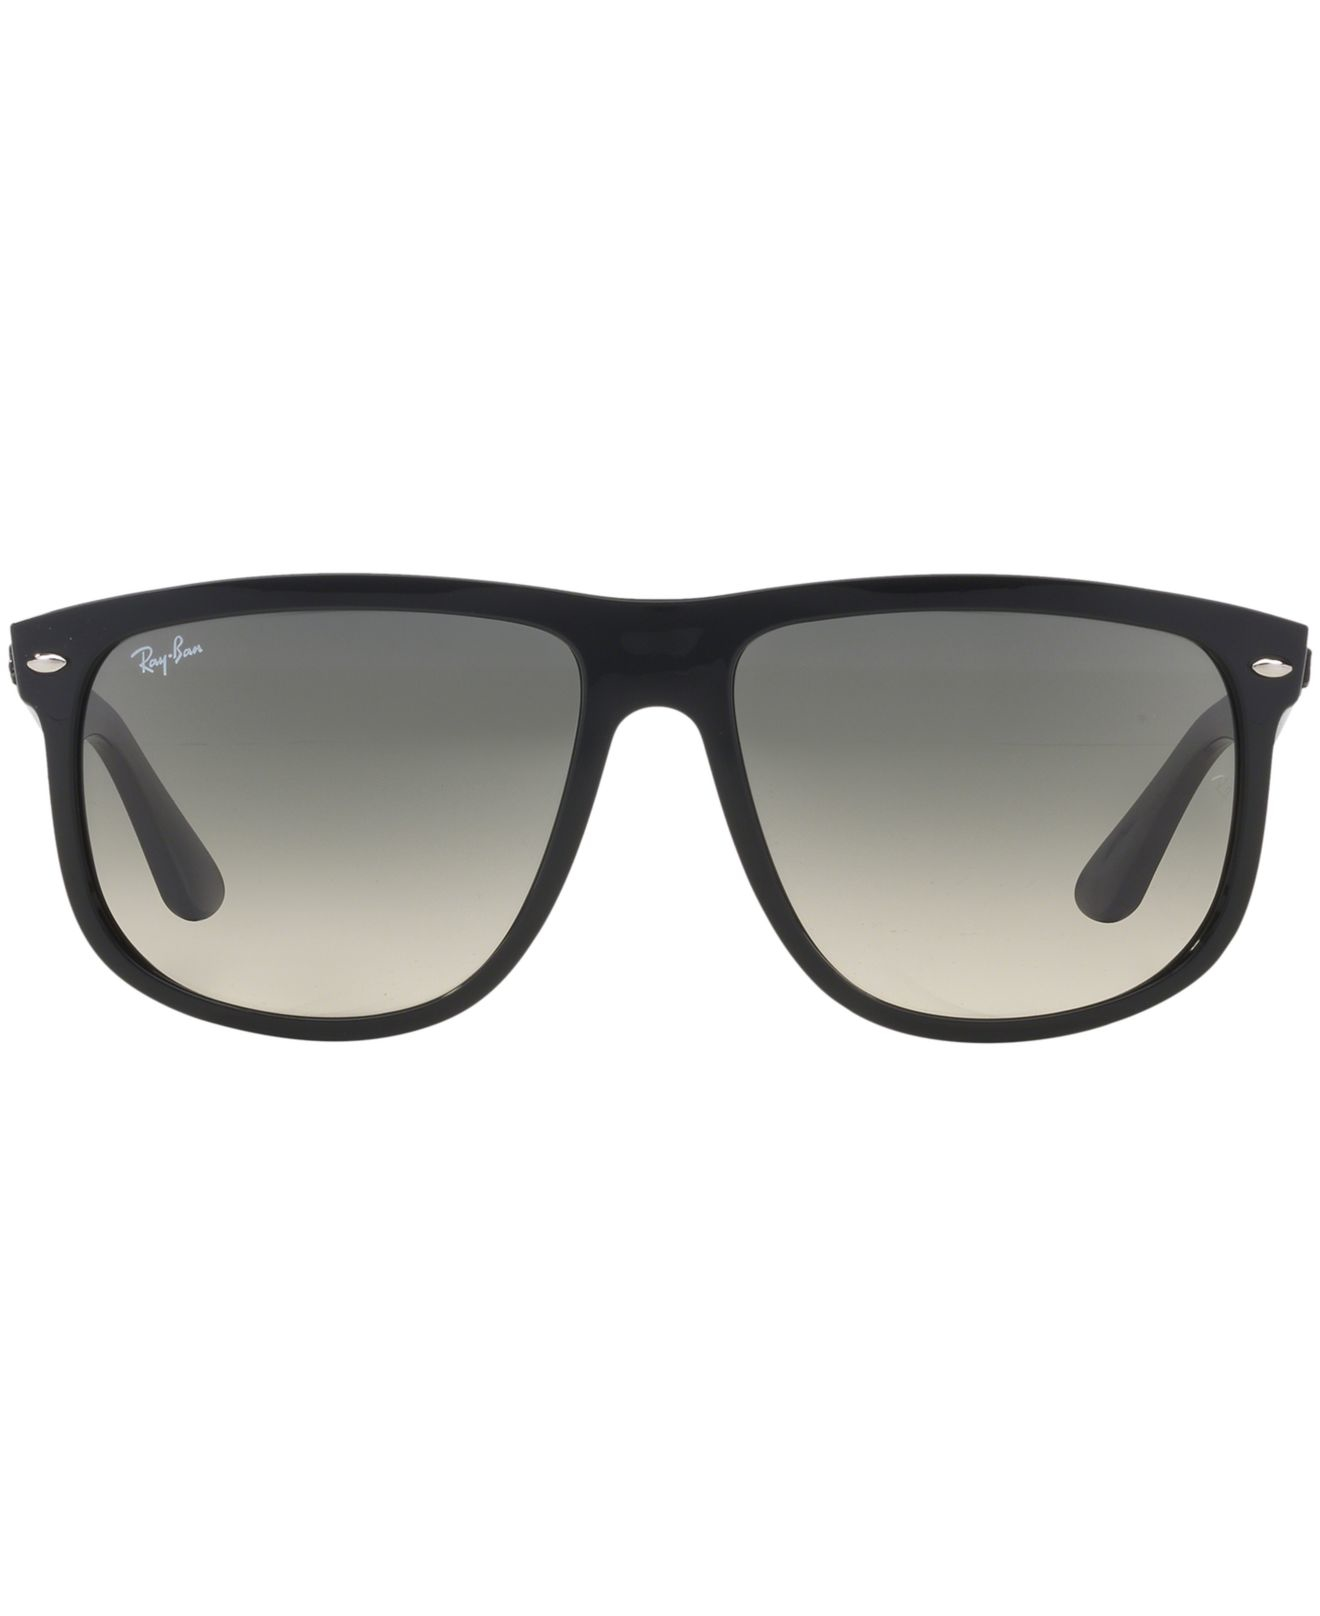 a09549d8c1 Ray Ban Rb4147 56 « Heritage Malta